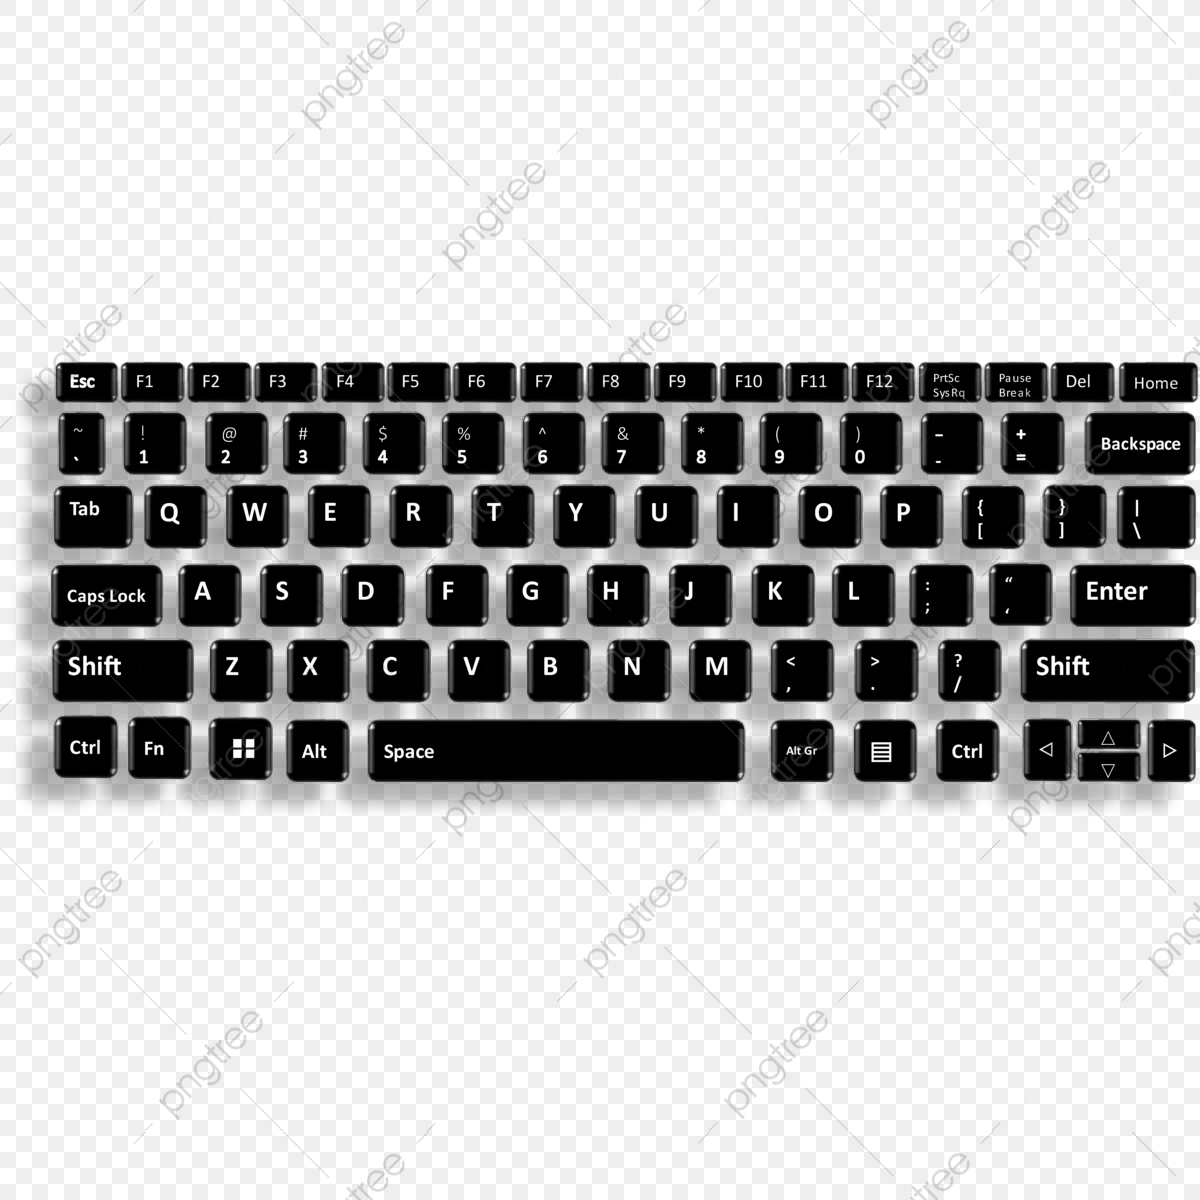 Full Keyboard Key Keyboard Key Keyboard Png And Vector With Transparent Background For Free Download